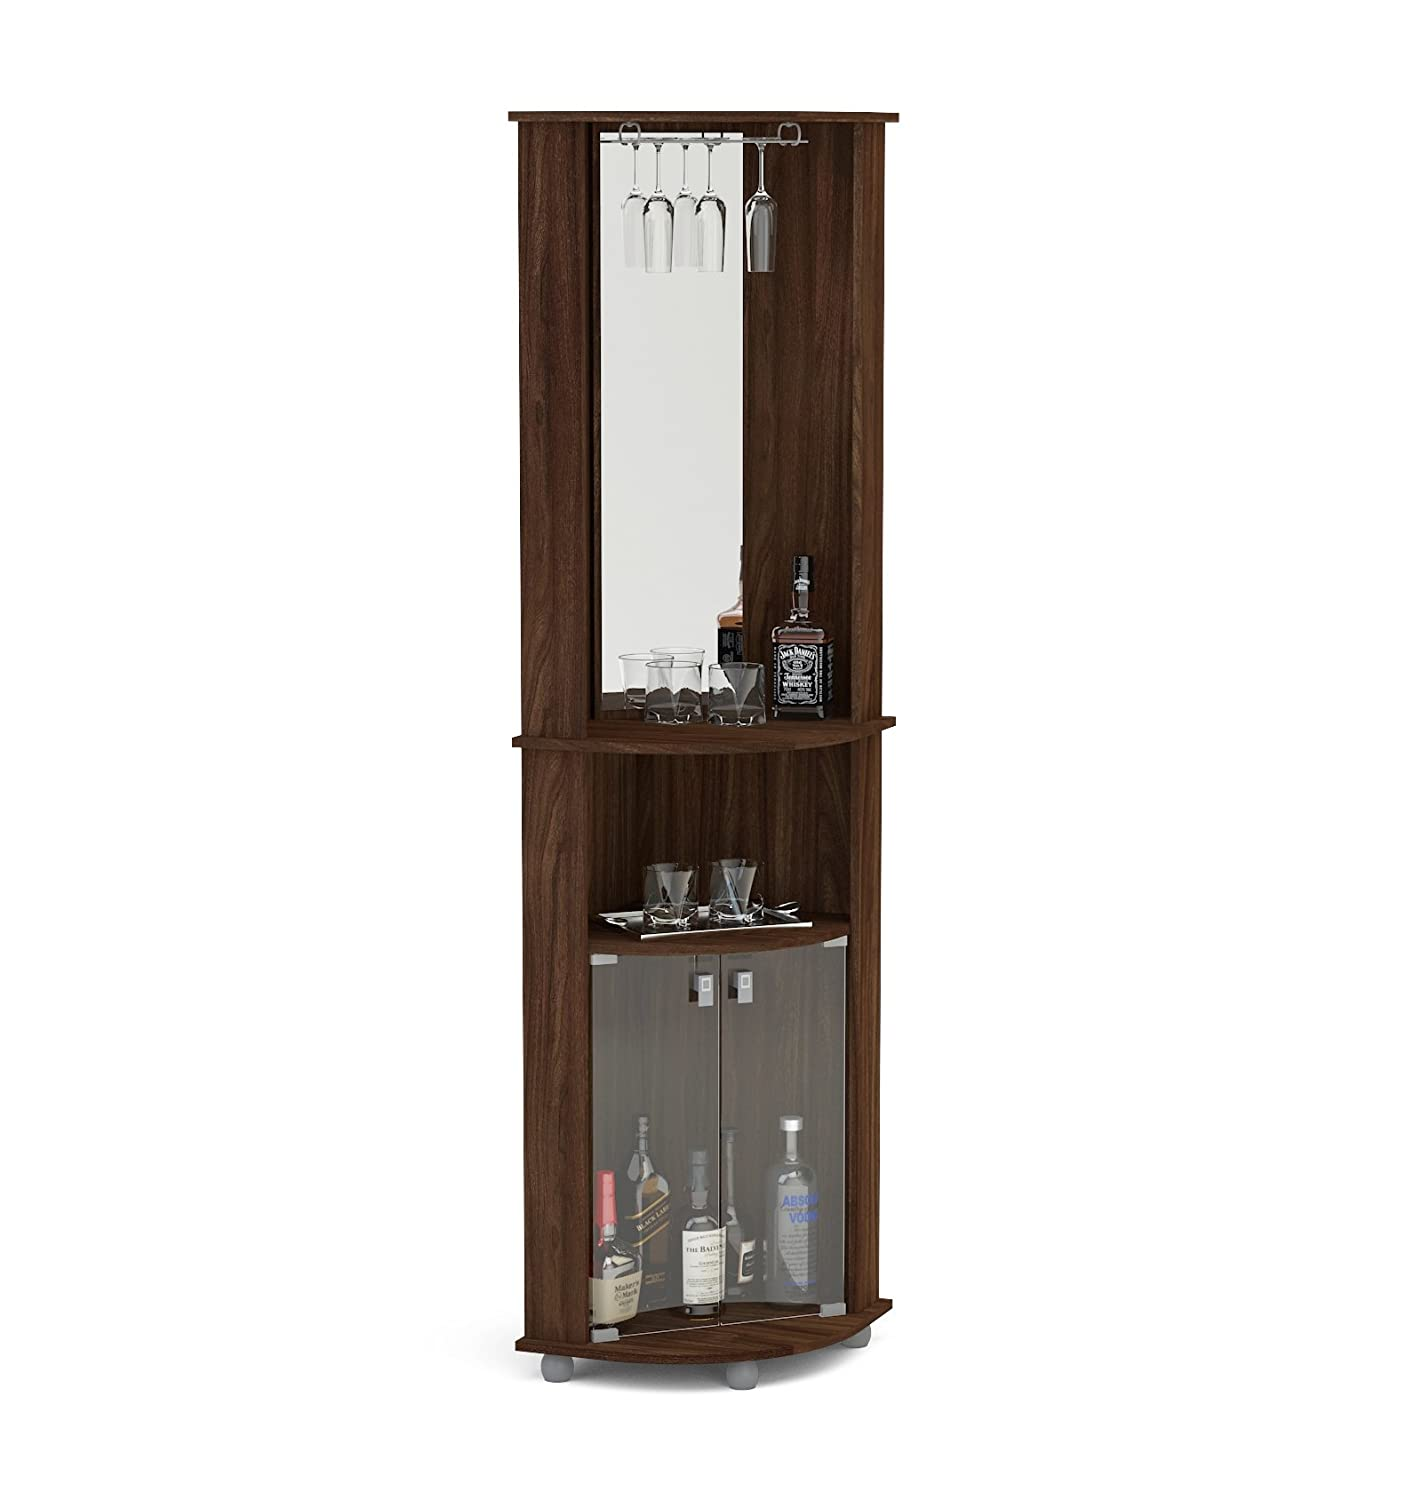 Boahaus Corner Bar, 2 glass door, Mirrowed Wall, Glass rack 210119